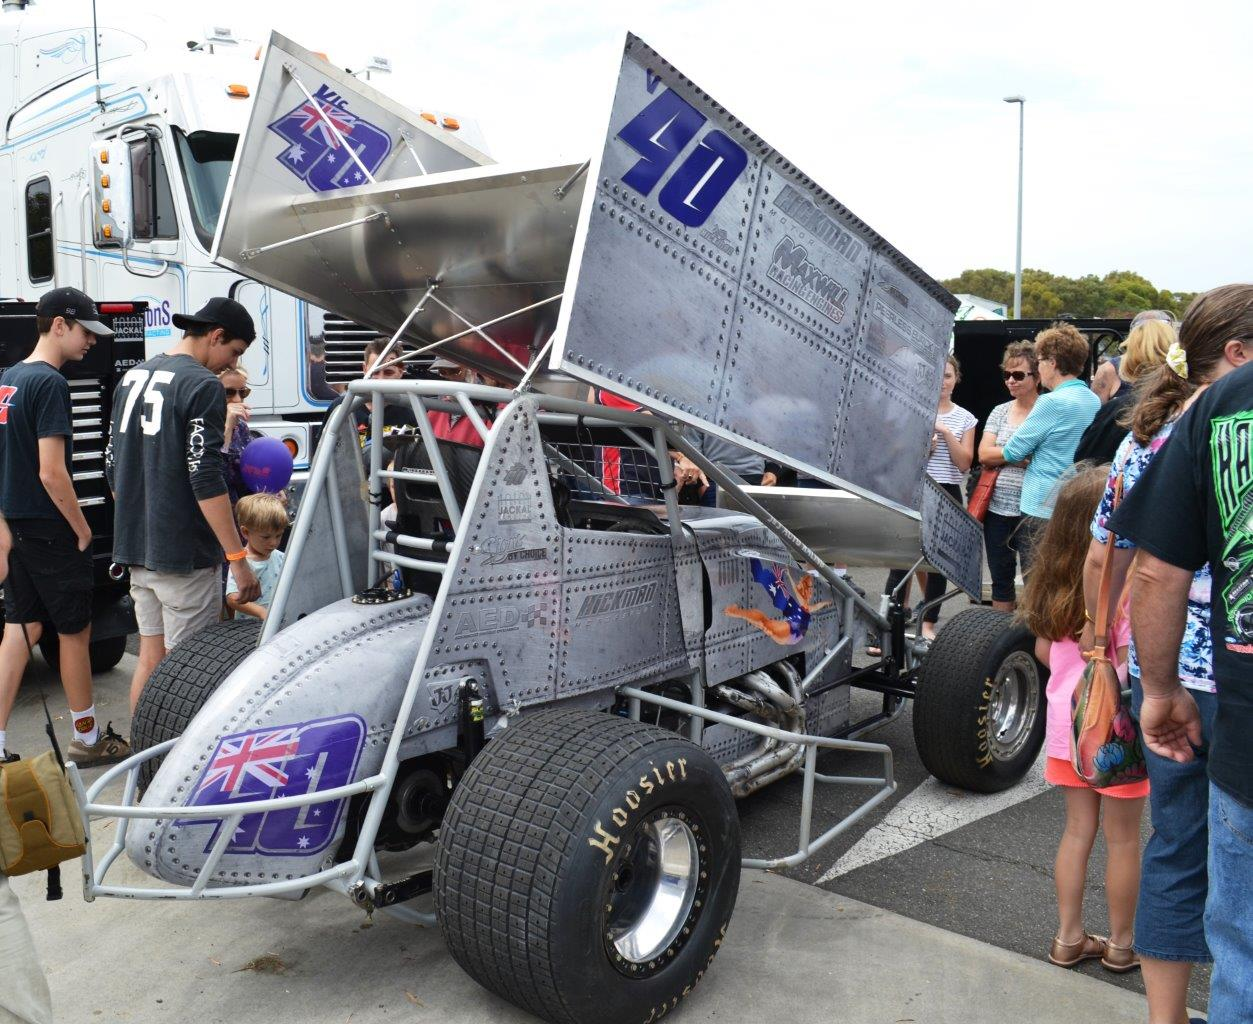 Rusty Hickman and Team took out the Best Presented Car